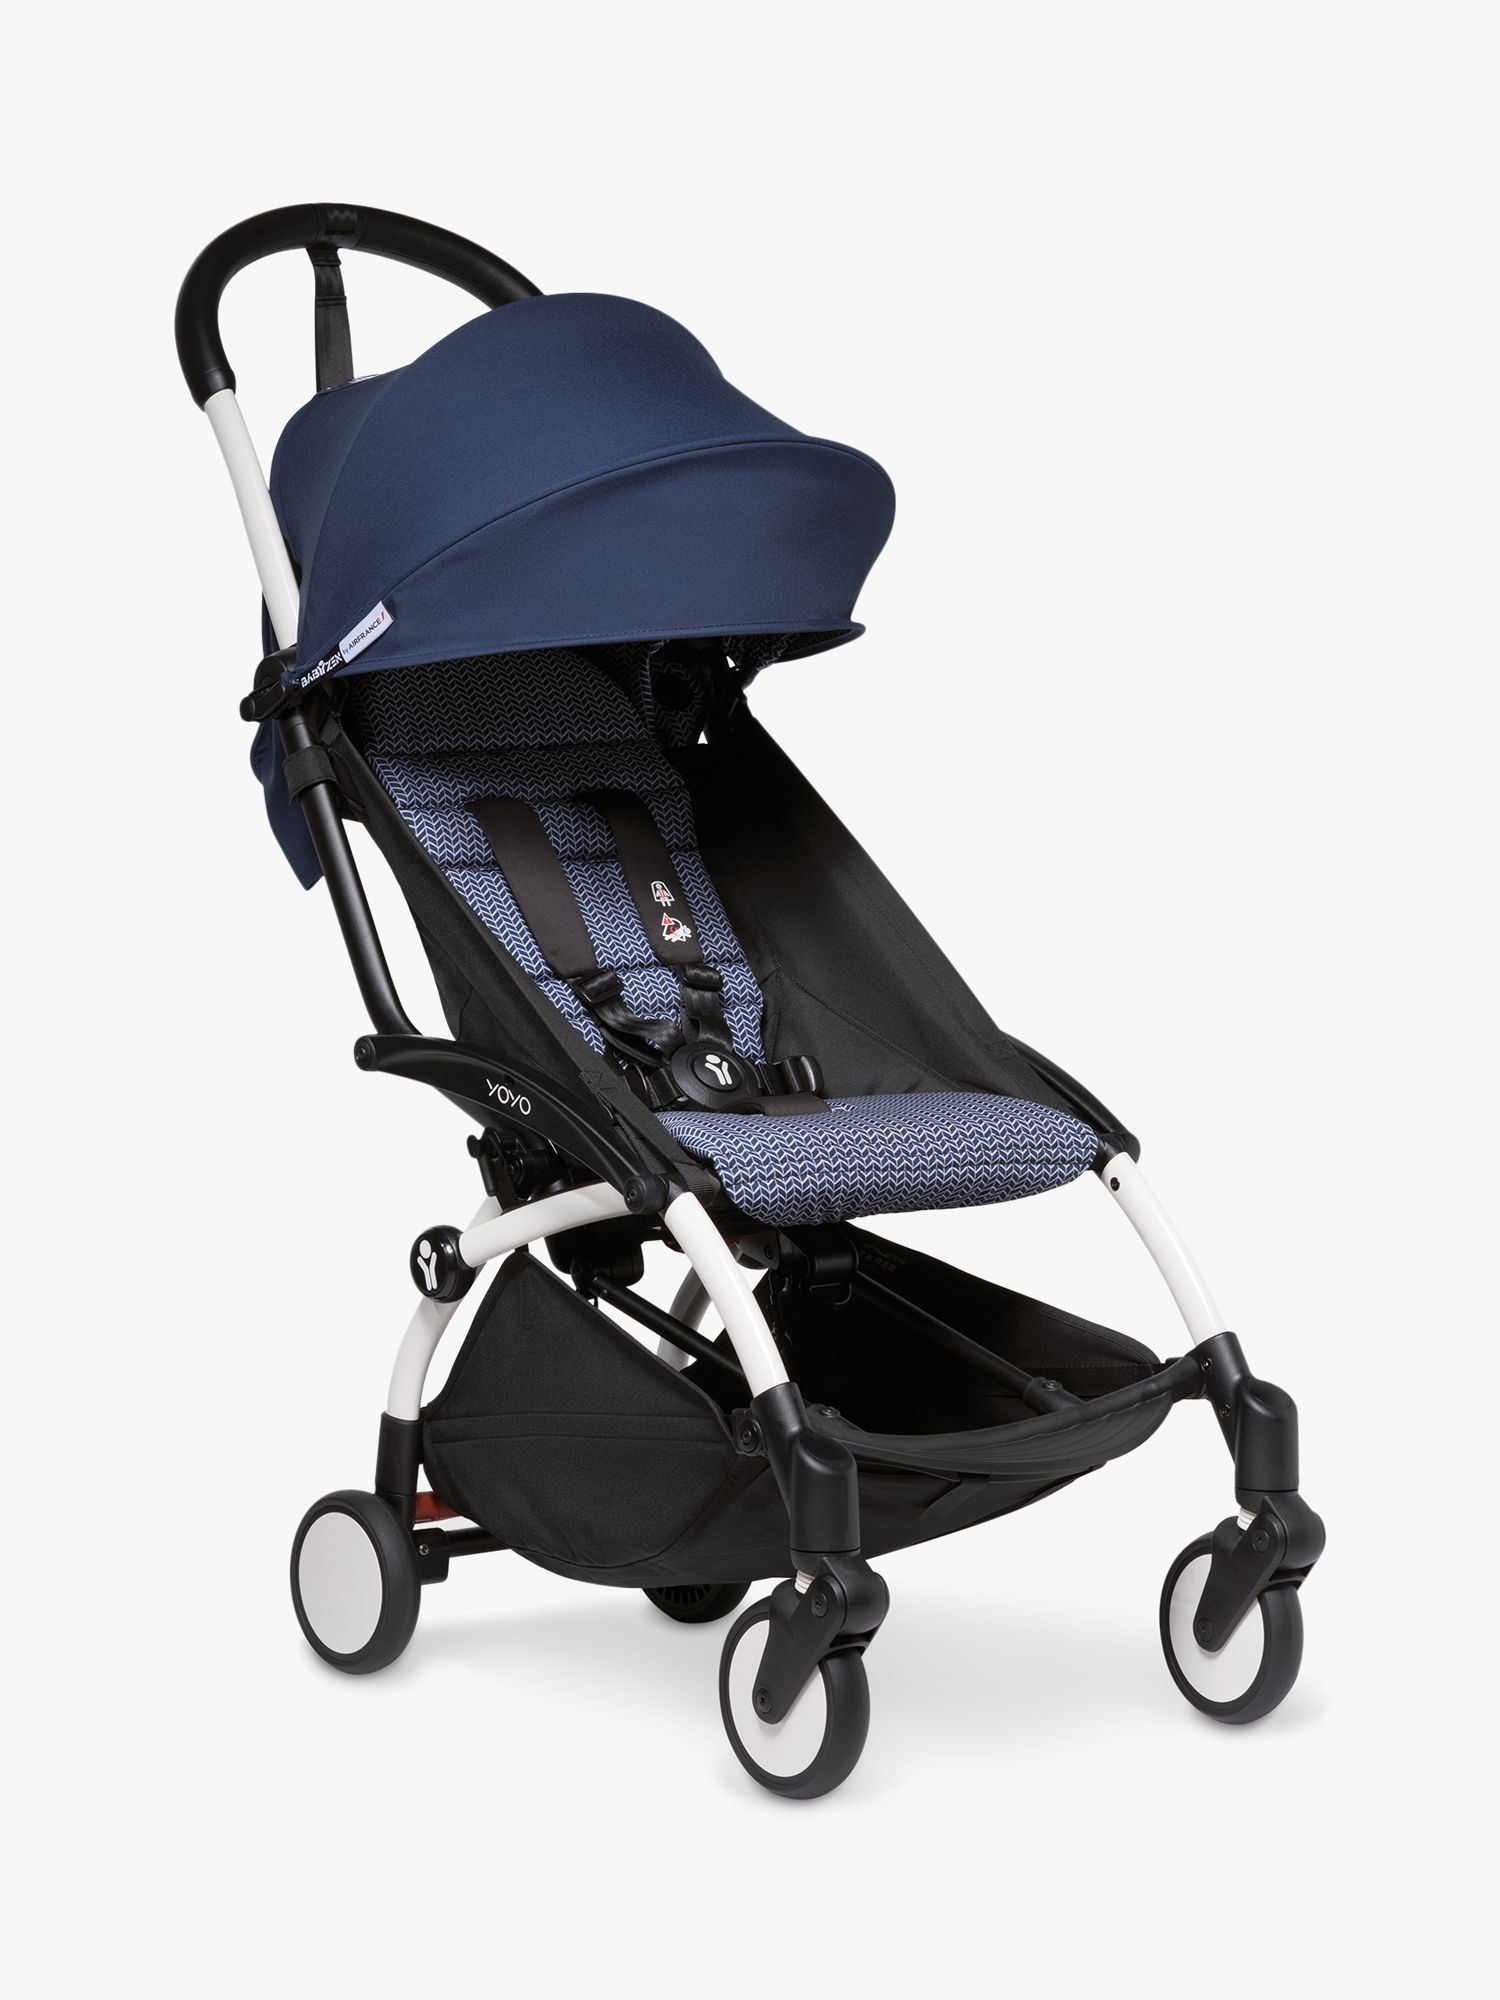 Offering ultimate comfort for your child and practicality for you, the YOYO² Stroller by BABYZEN folds and unfolds with one hand, can be carried over the shoulder, slips in anywhere, stores easily and travels as carry-on-baggage*. Designed with unparalleled flexibility and cushioning, thanks to the new, individual suspensions on all 4 wheels, this stroller perfectly navigates all types of surface so that you can get out and about and explore with your little one. Extremely strong and light thank